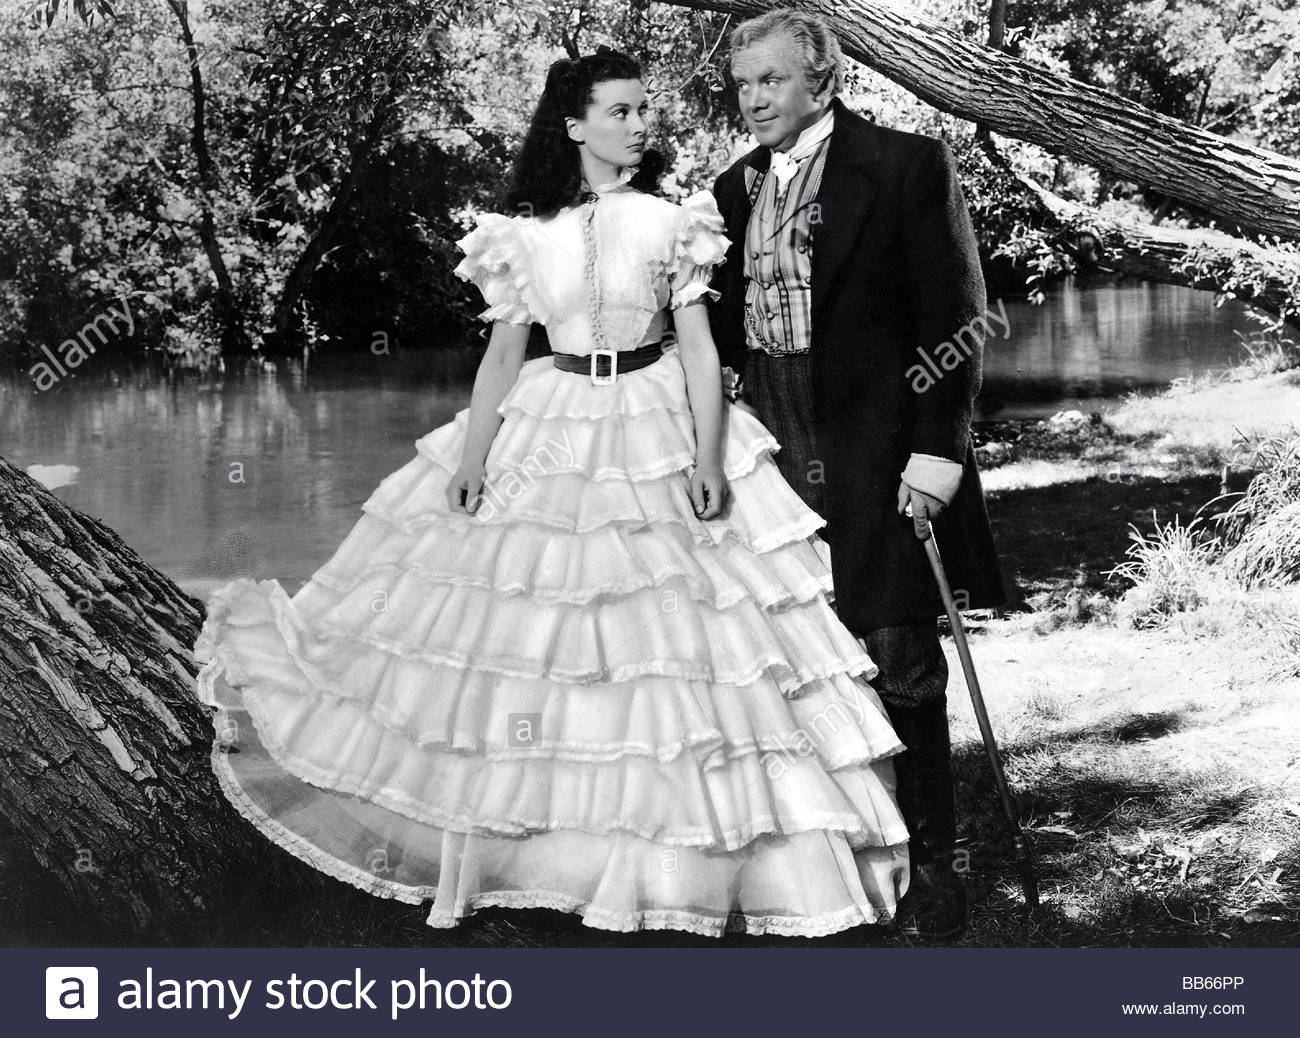 Vivien Leigh Gone With The Wind Dress Stock Photos & Vivien Leigh ...